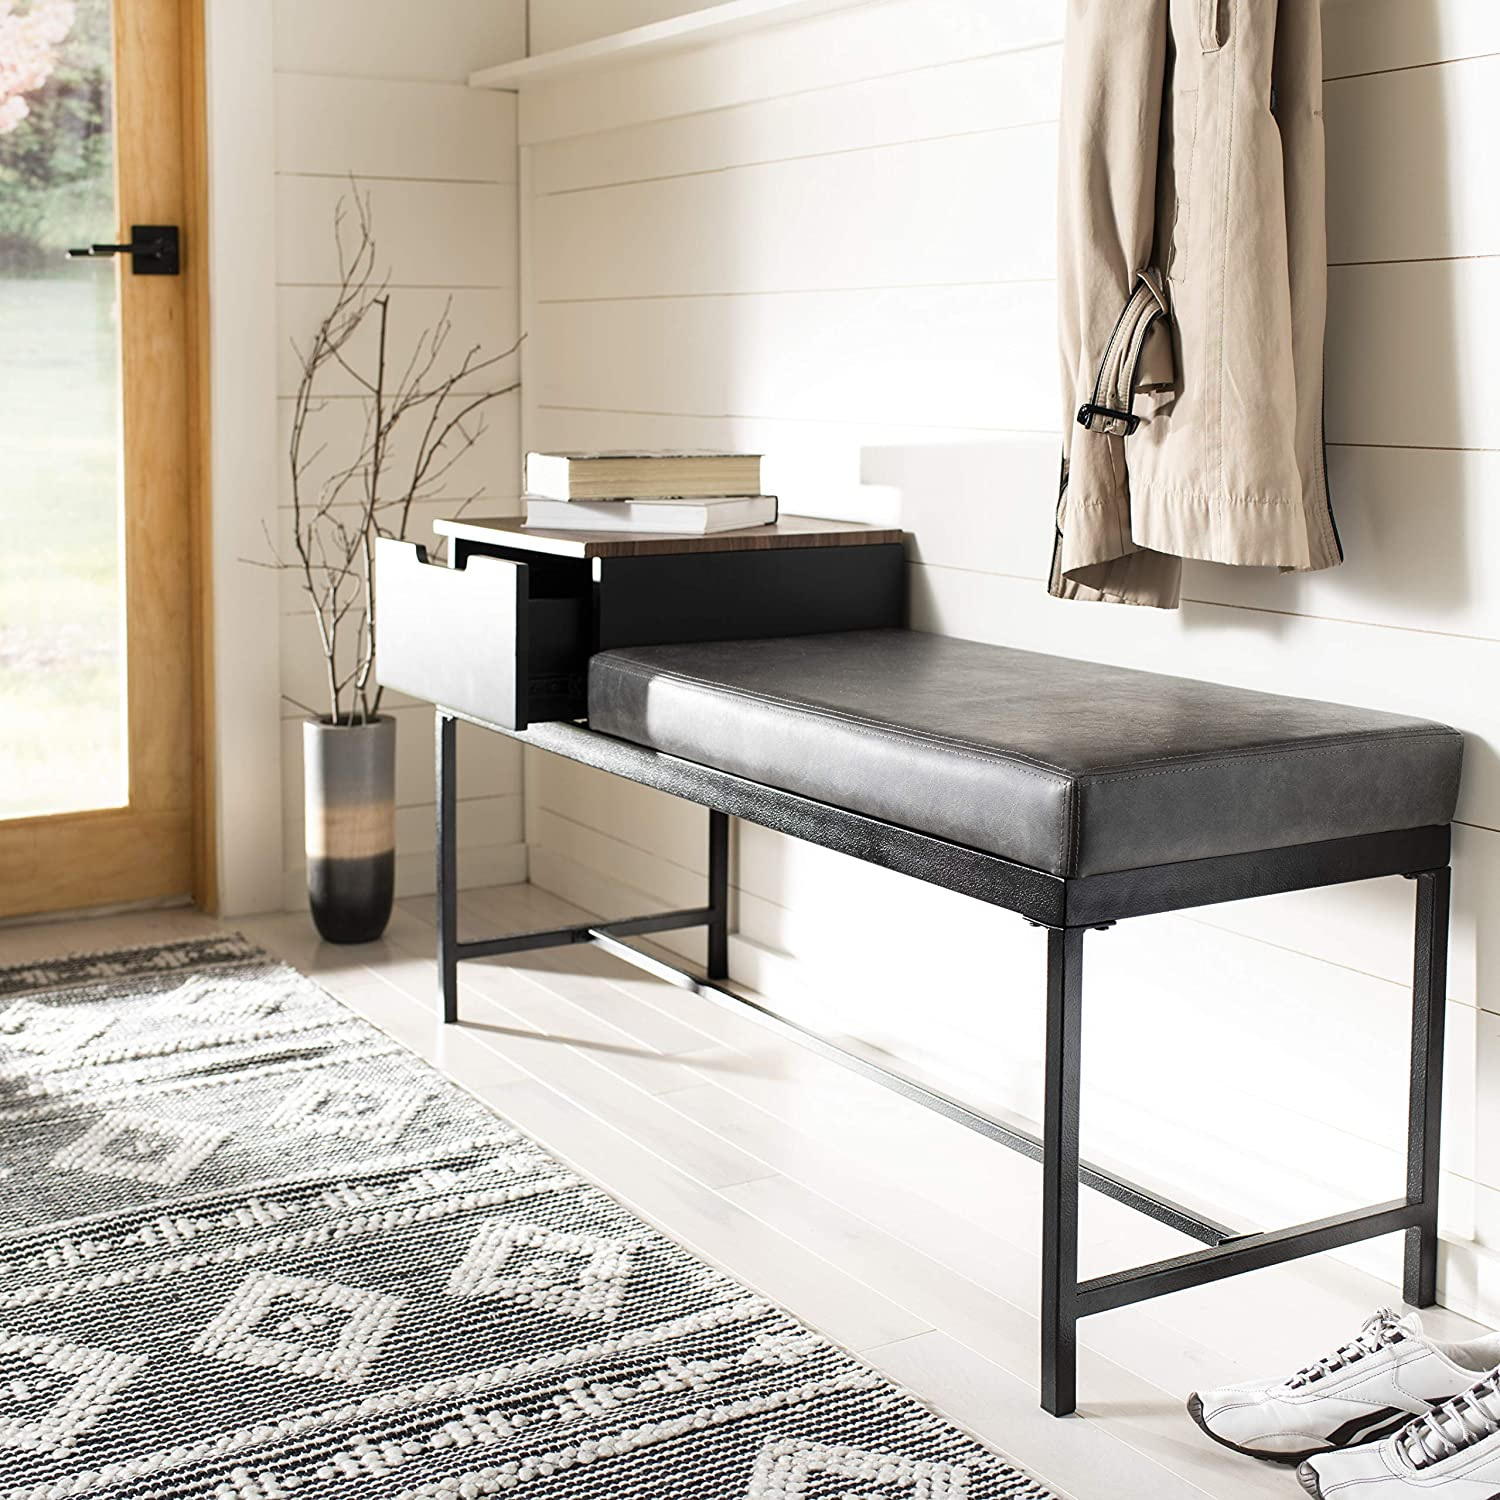 Safavieh Home Maruka 31-inch Brown and Grey Faux Leather Bench with Storage